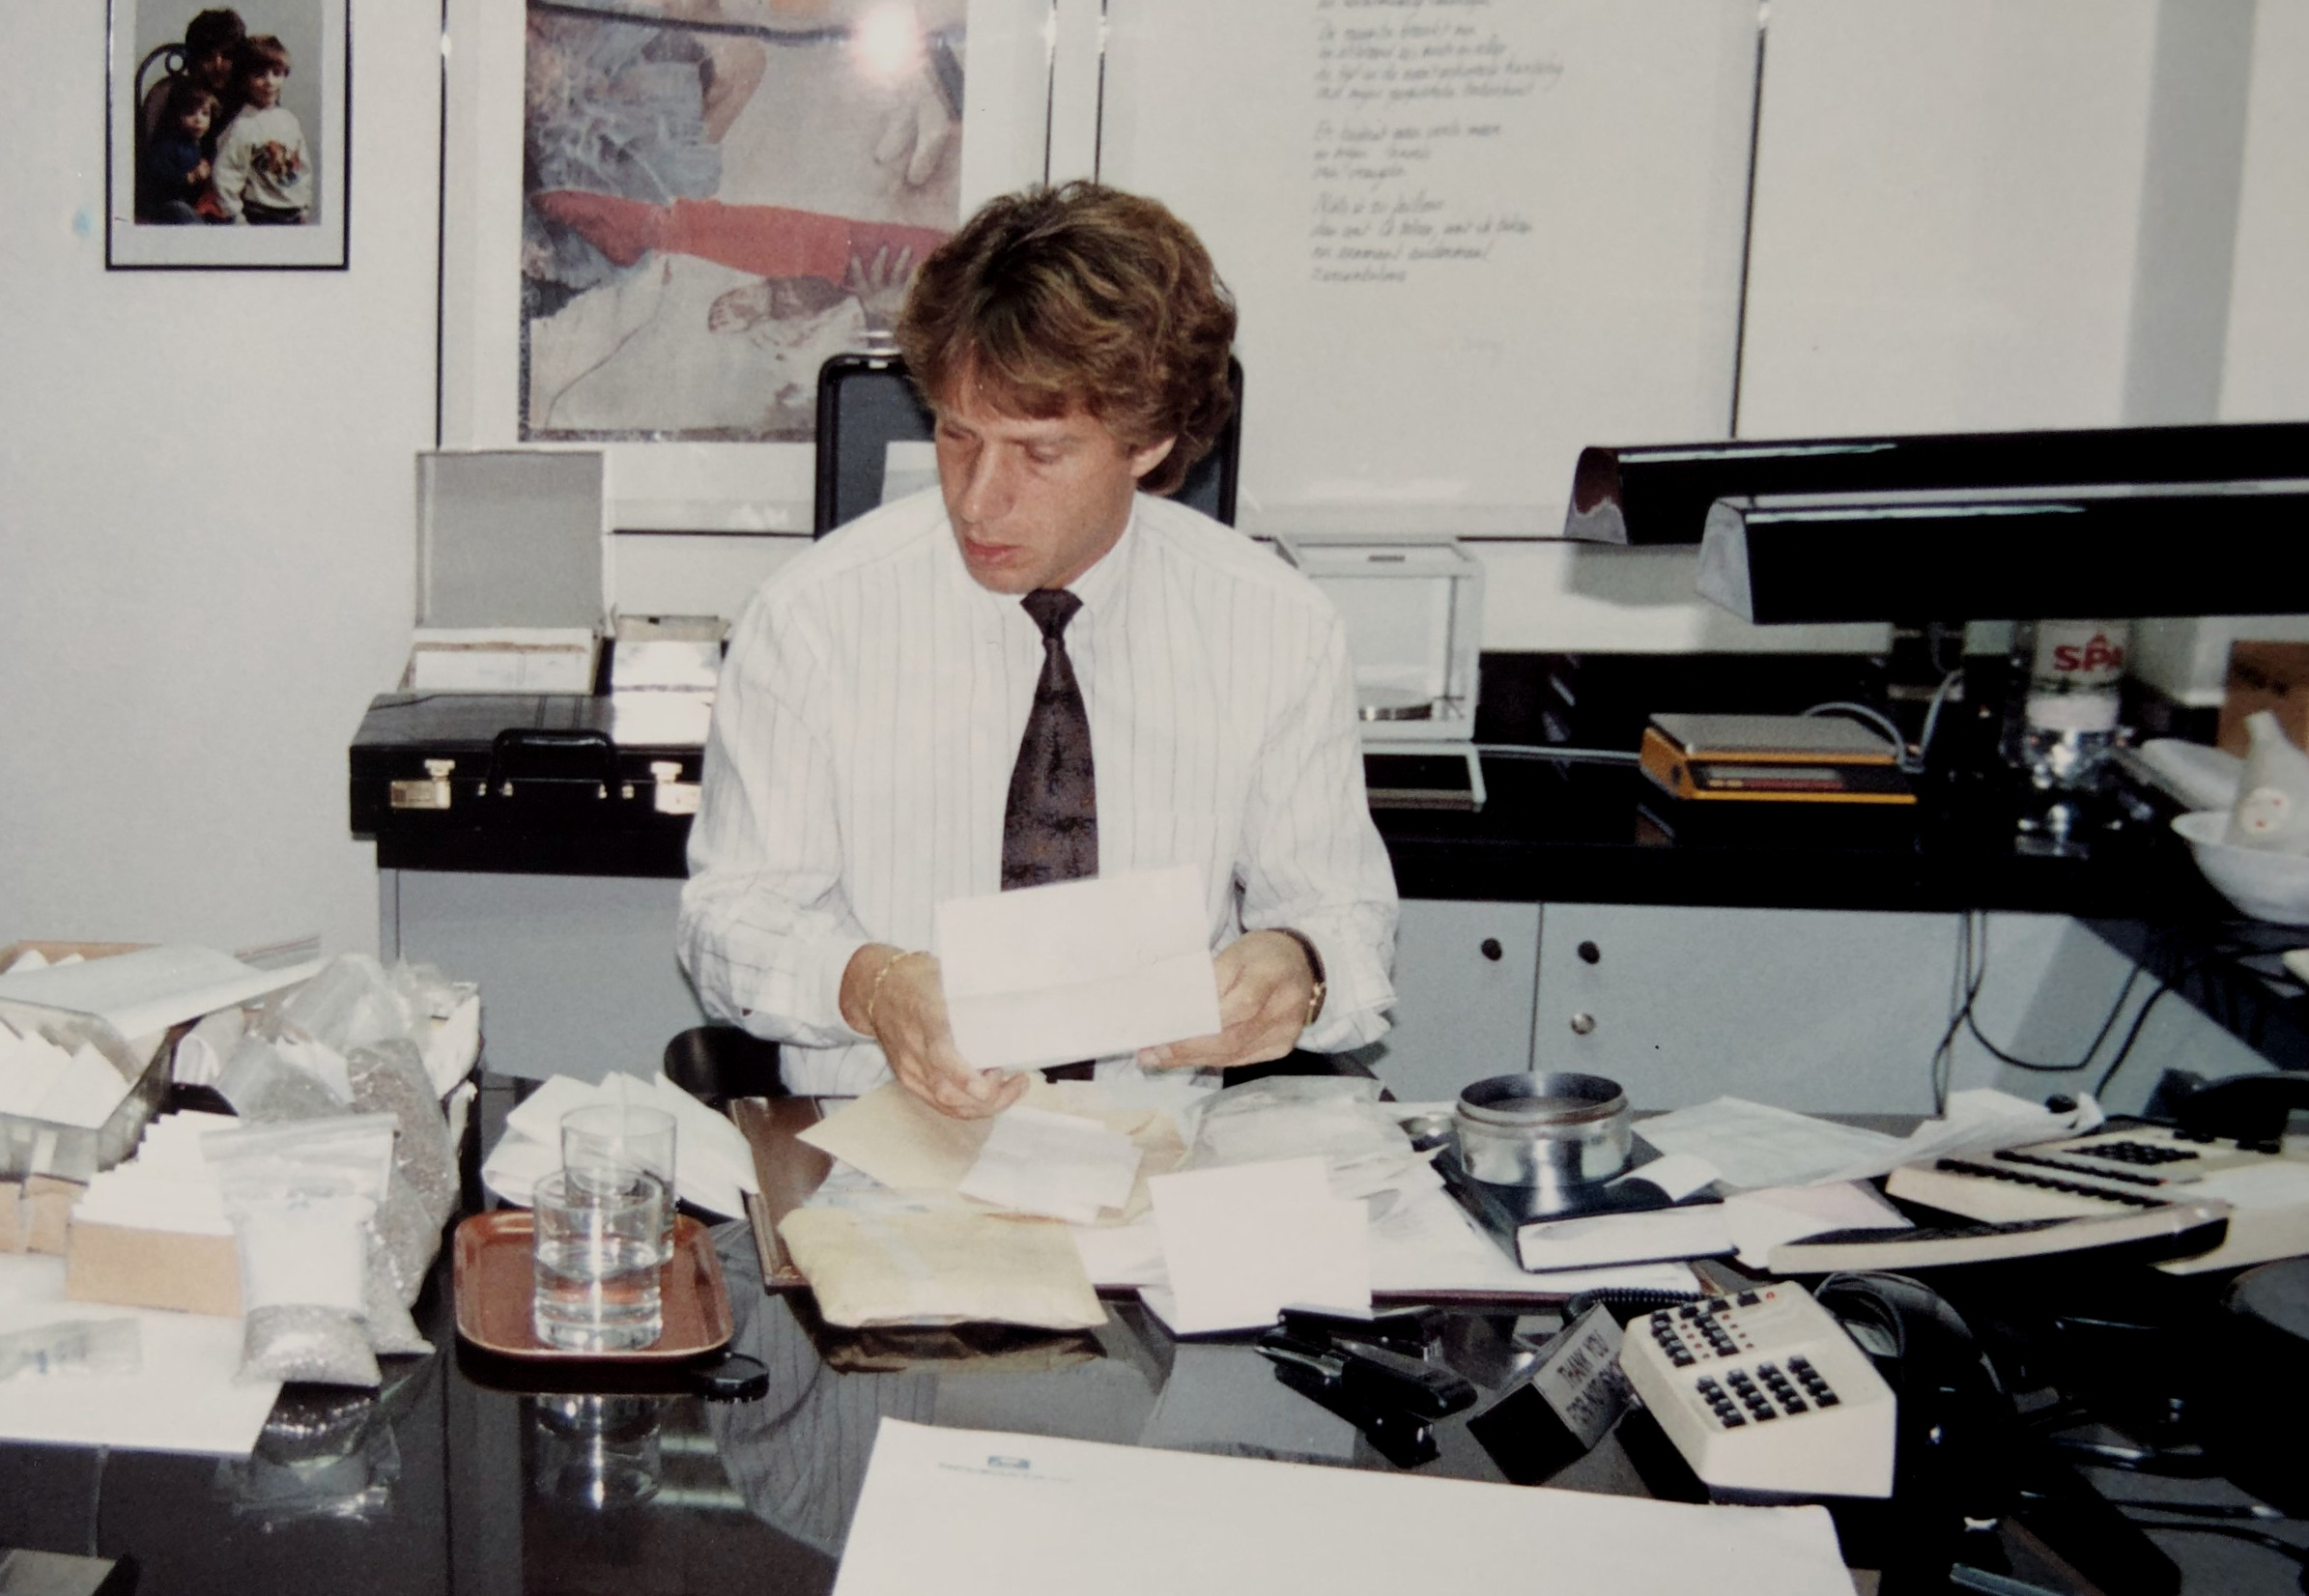 Jan Leemans, founder of the family business, at work in his trading office in the Antwerp Diamond District. The picture was taken in 1986 and the top left corner shows that Stefan and Dennis were already around but clearly too young to help out in the family business at that time.